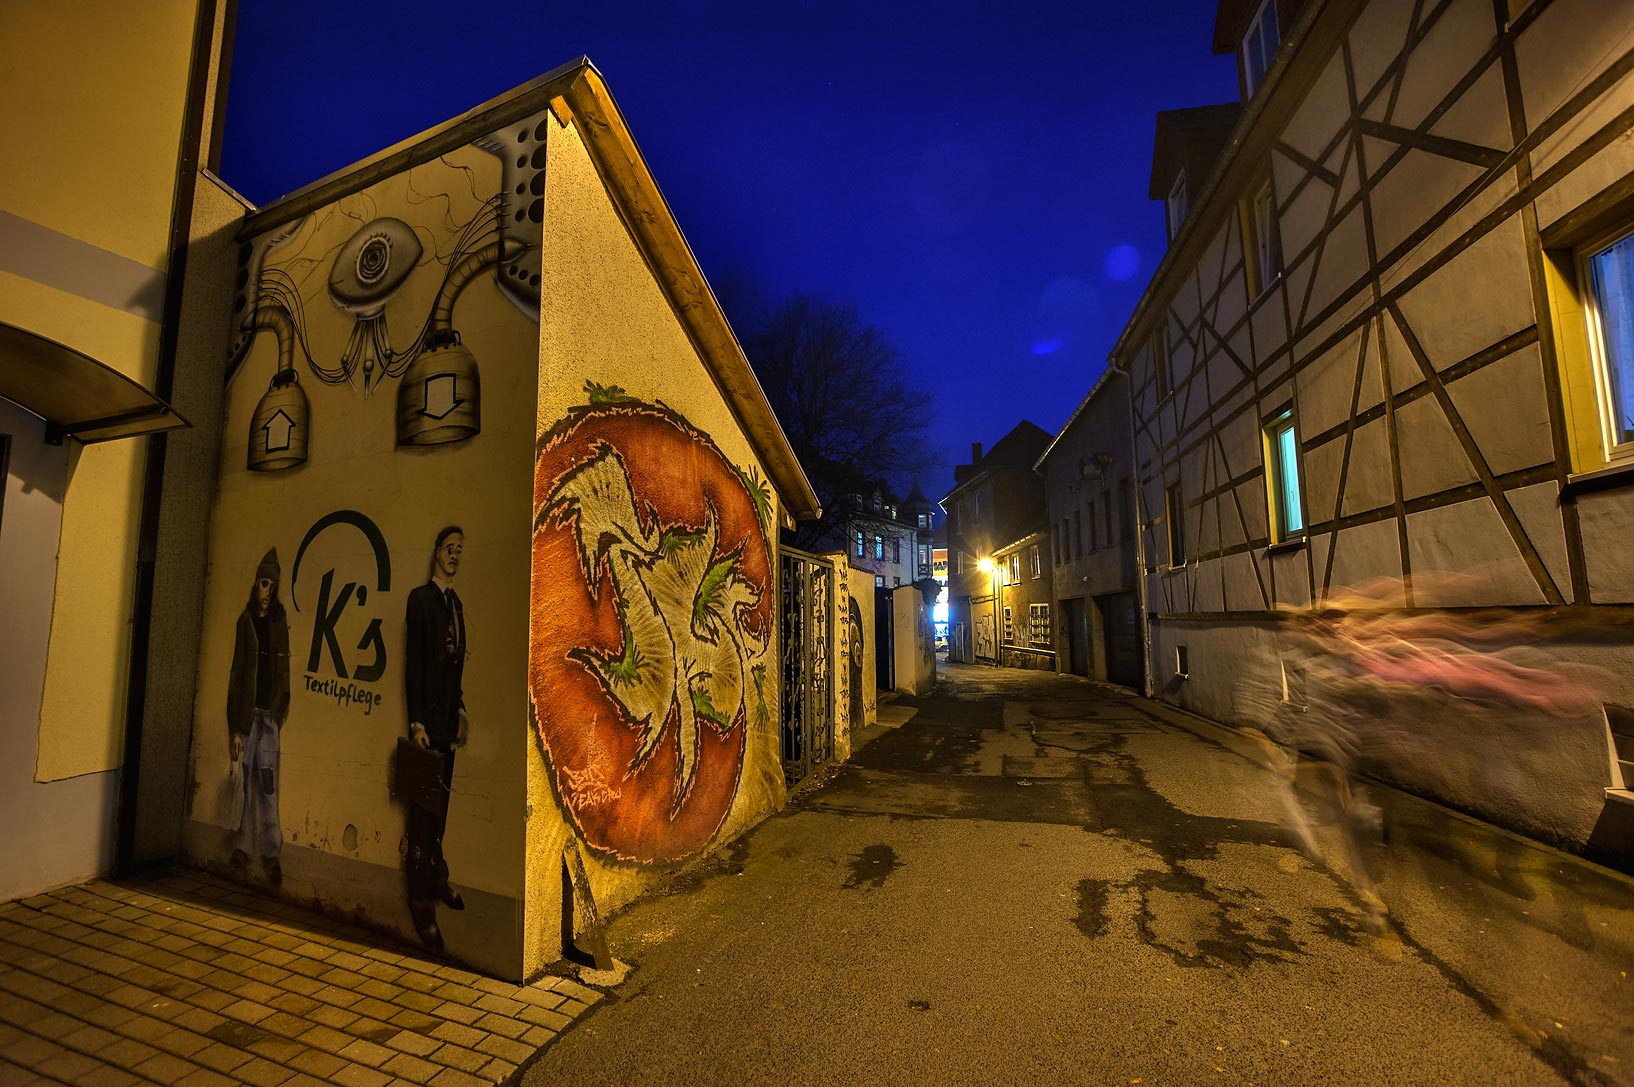 Street corner with graffiti in old city. Gotha, Germany